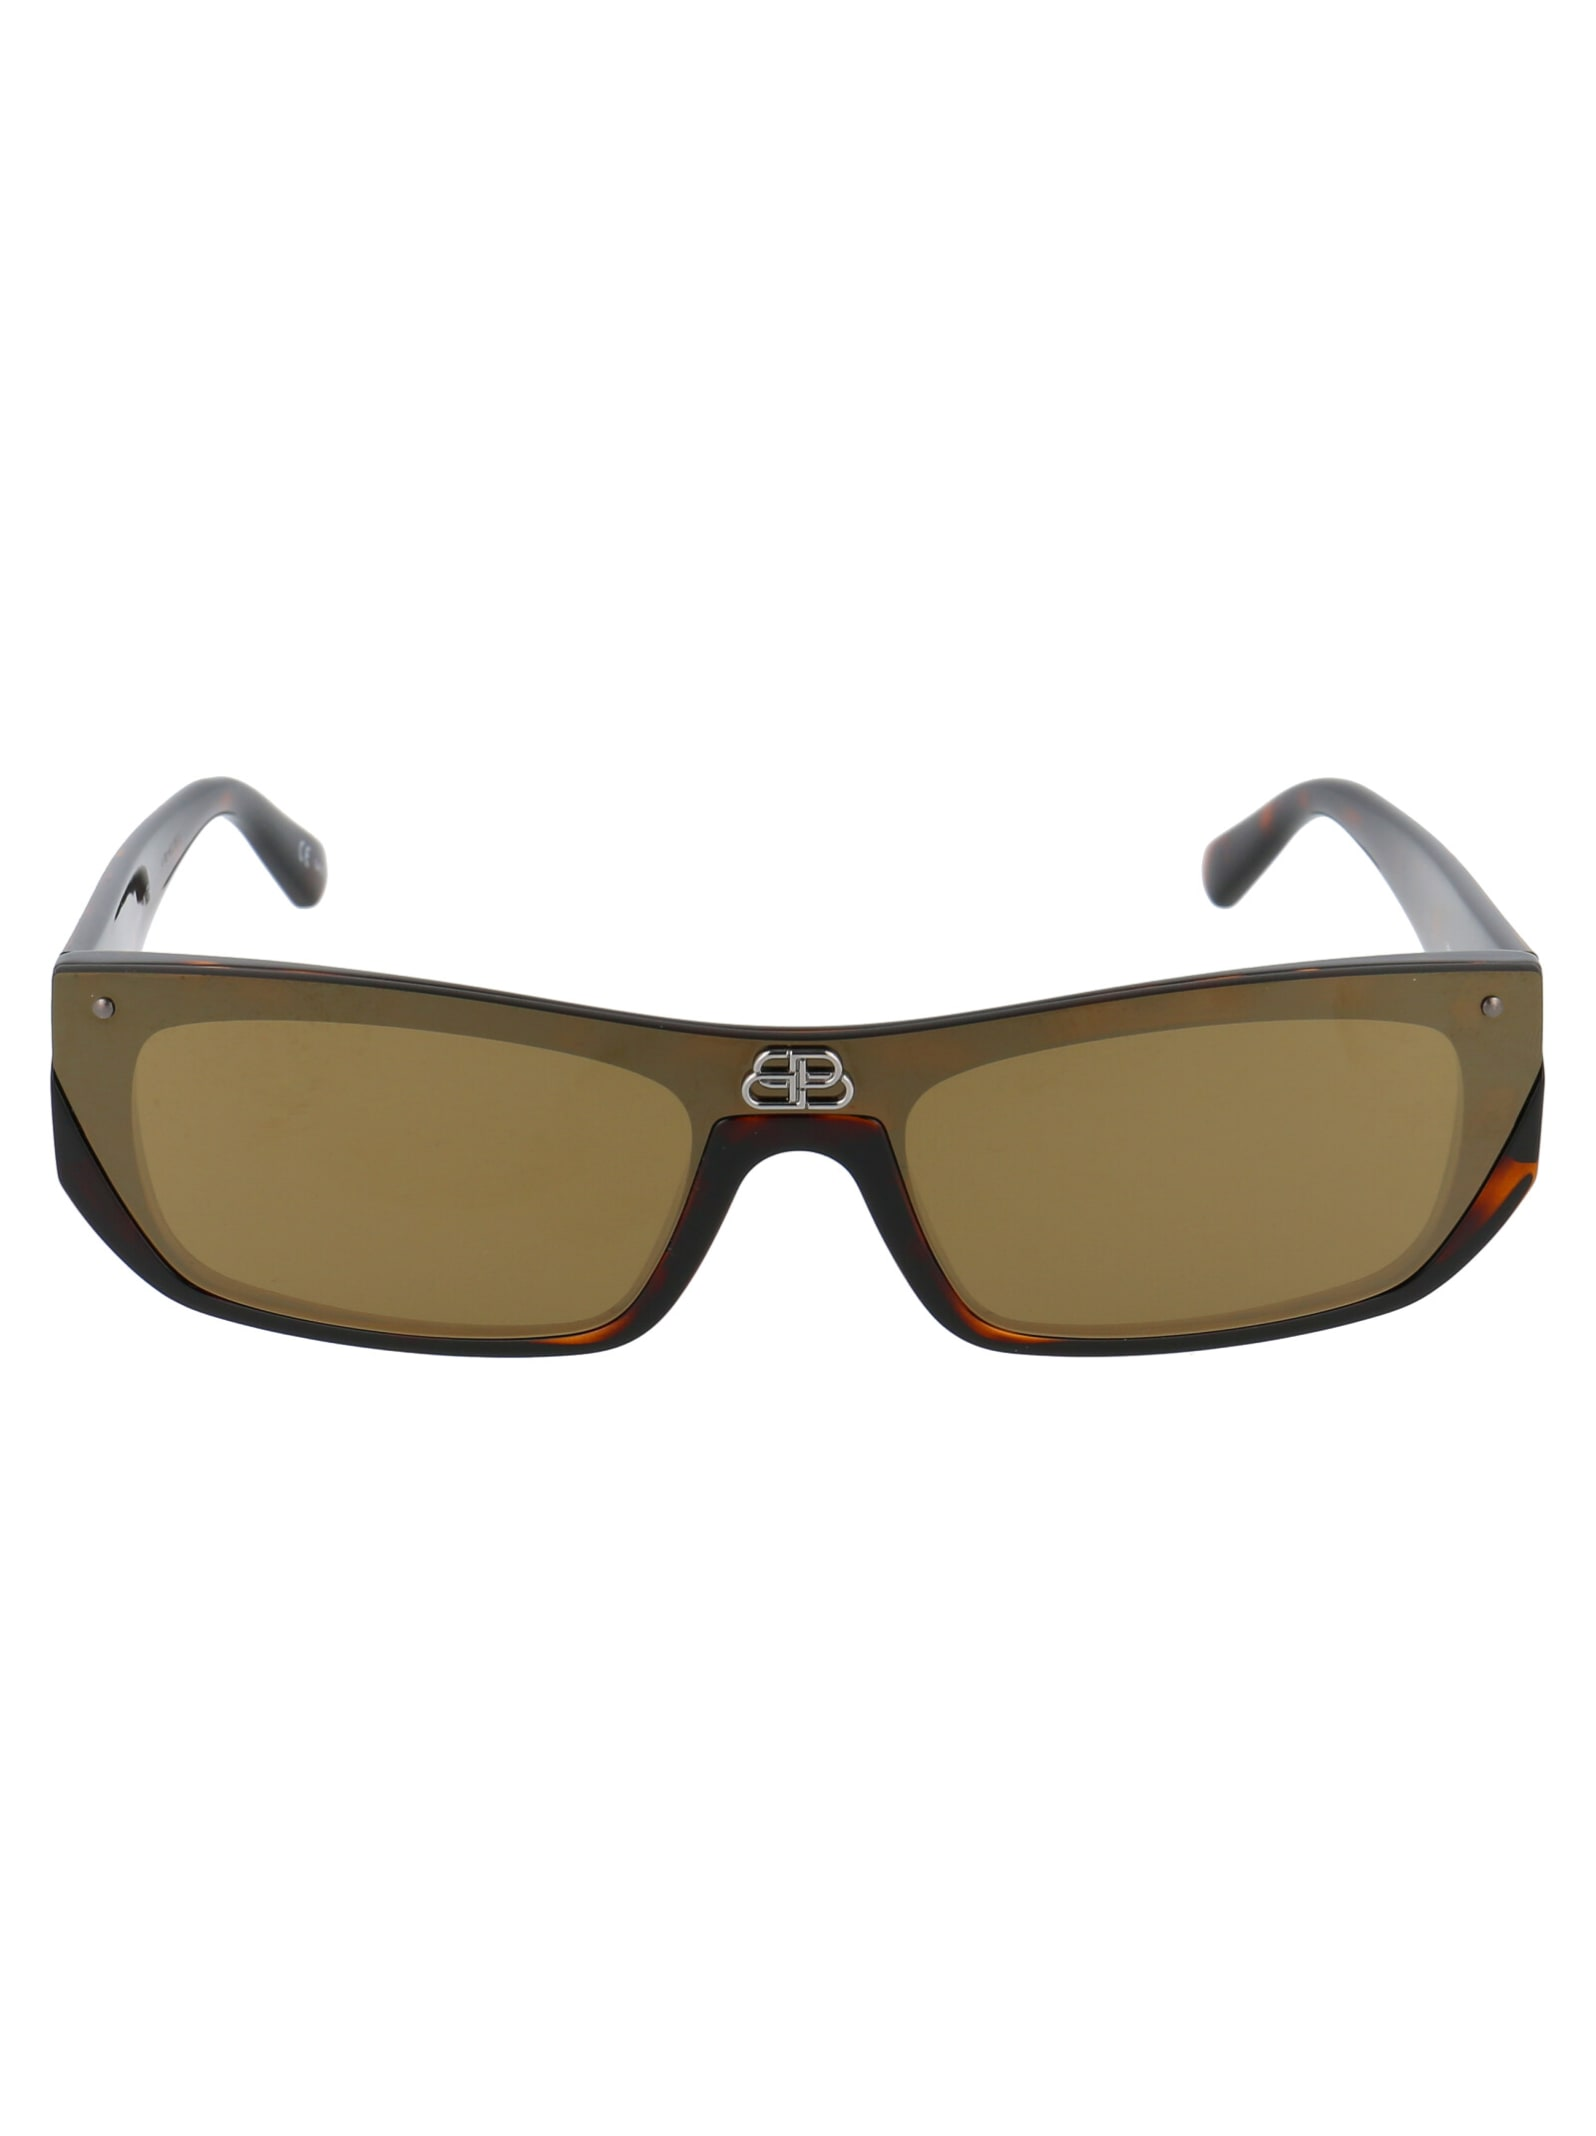 Bb0080s Sunglasses